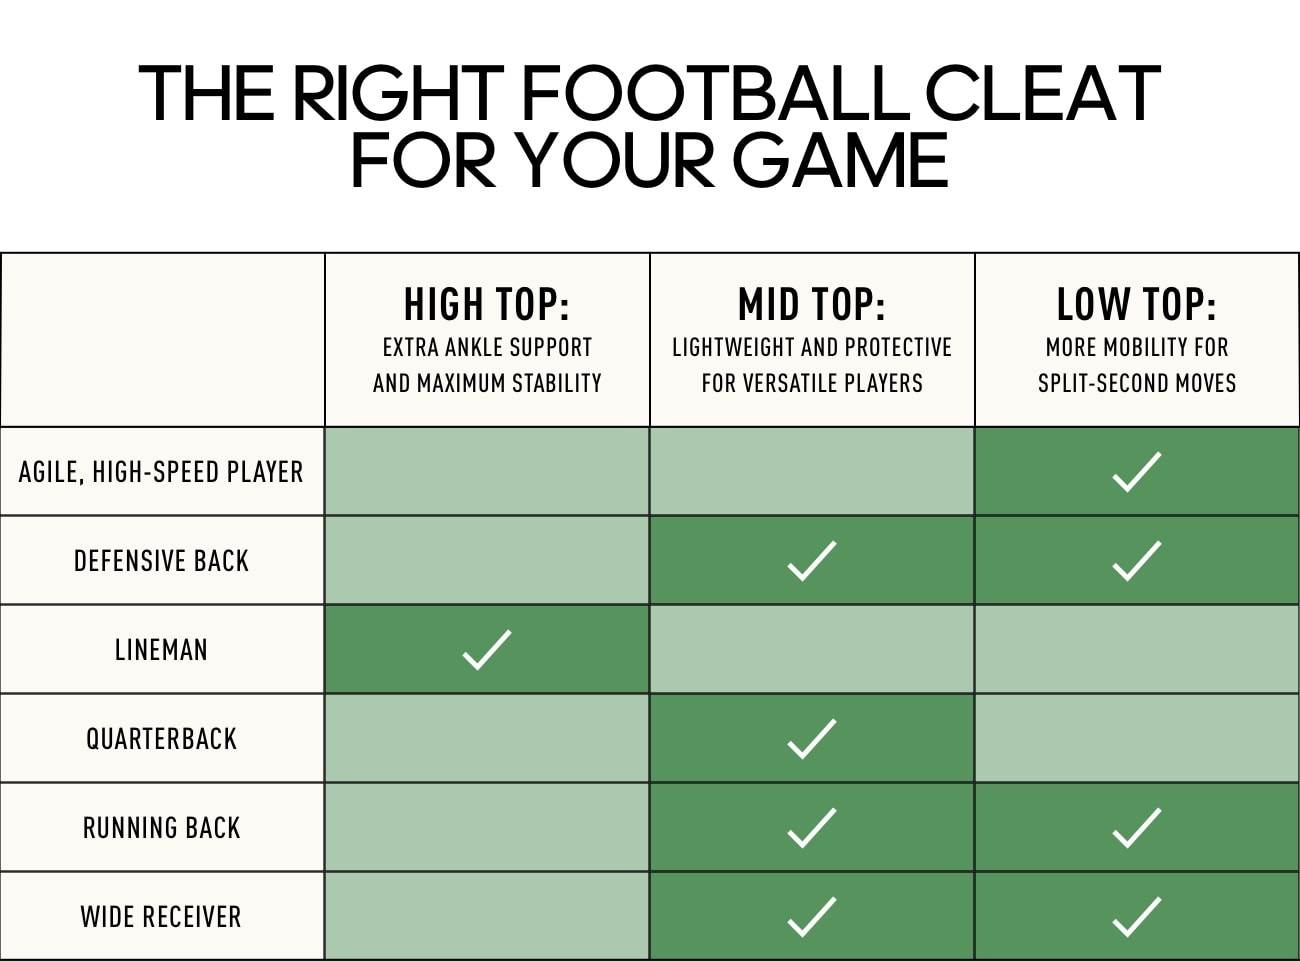 SEO-football-cleat-buying-guide-body-image-3